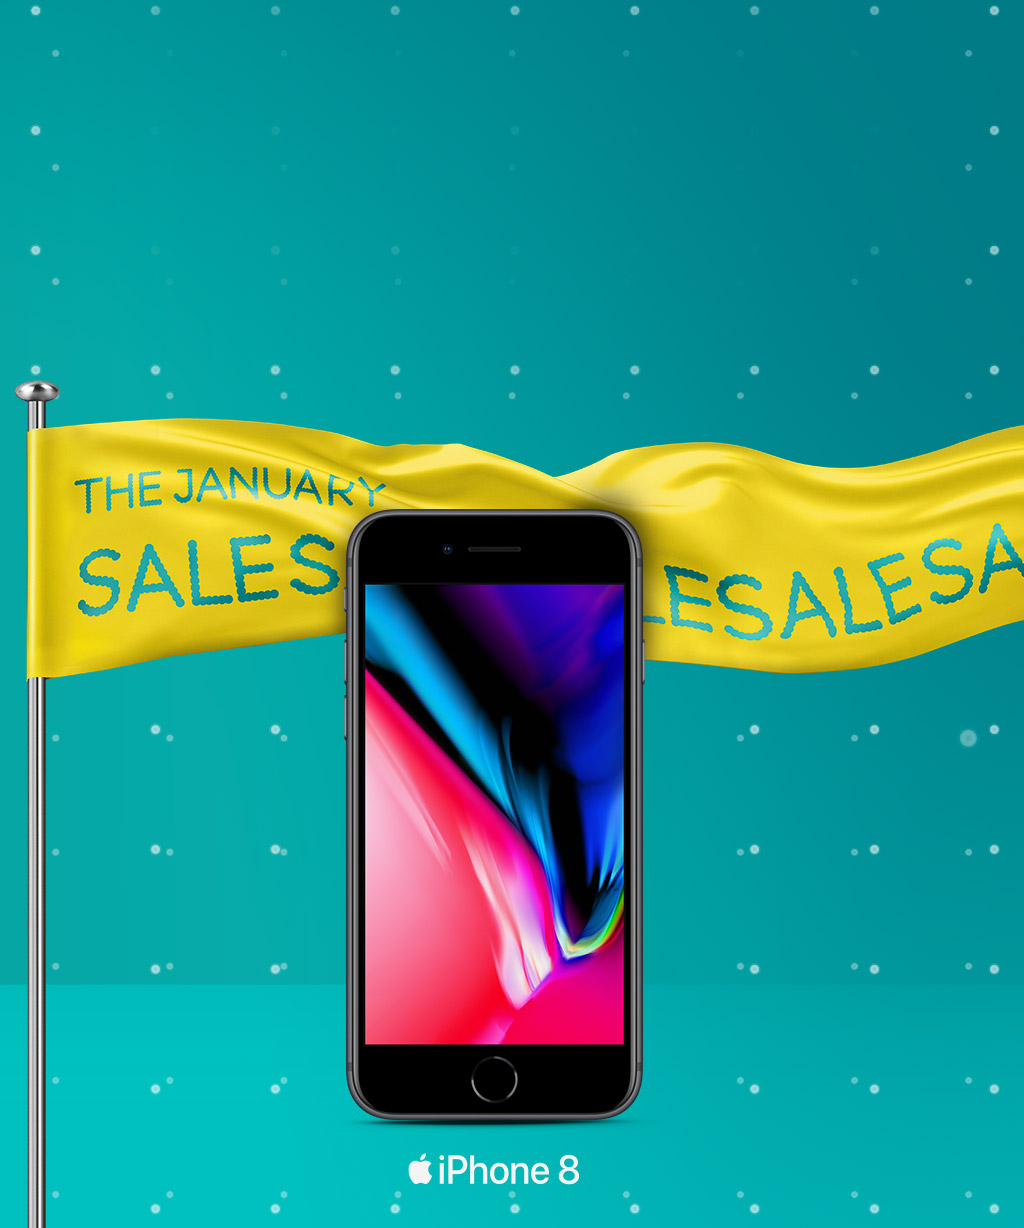 iPhone 8 and a savings flag